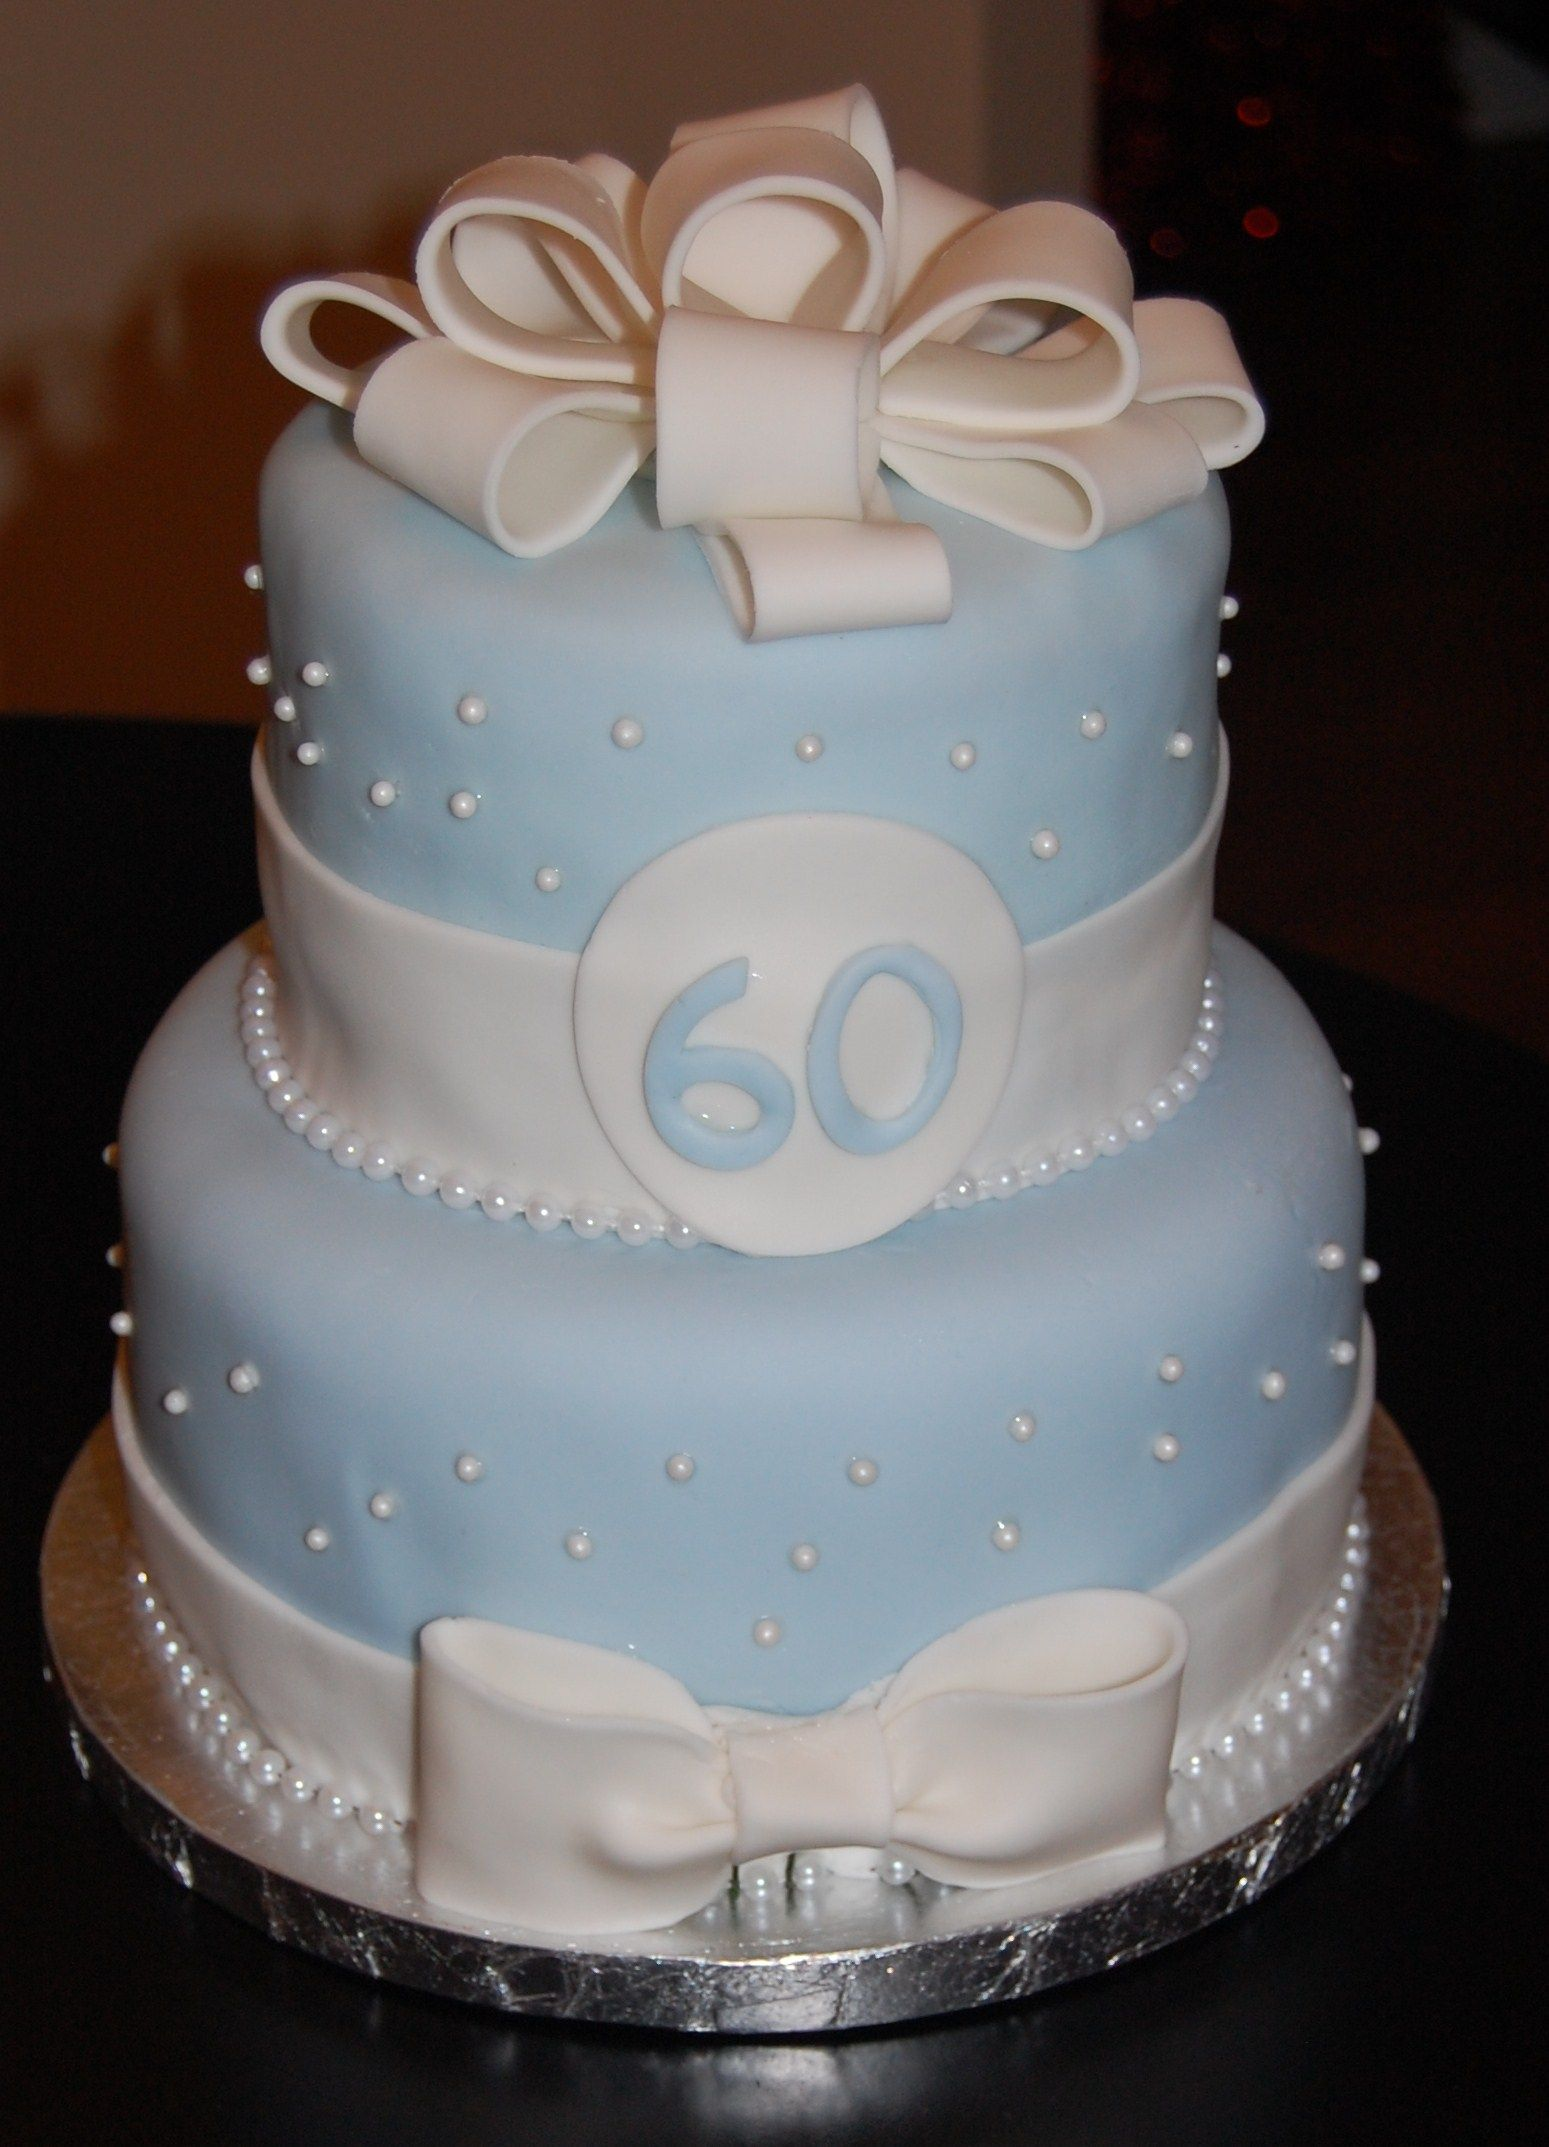 60th birthday cake designs cake inspiration pinterest for 60th birthday cake decoration